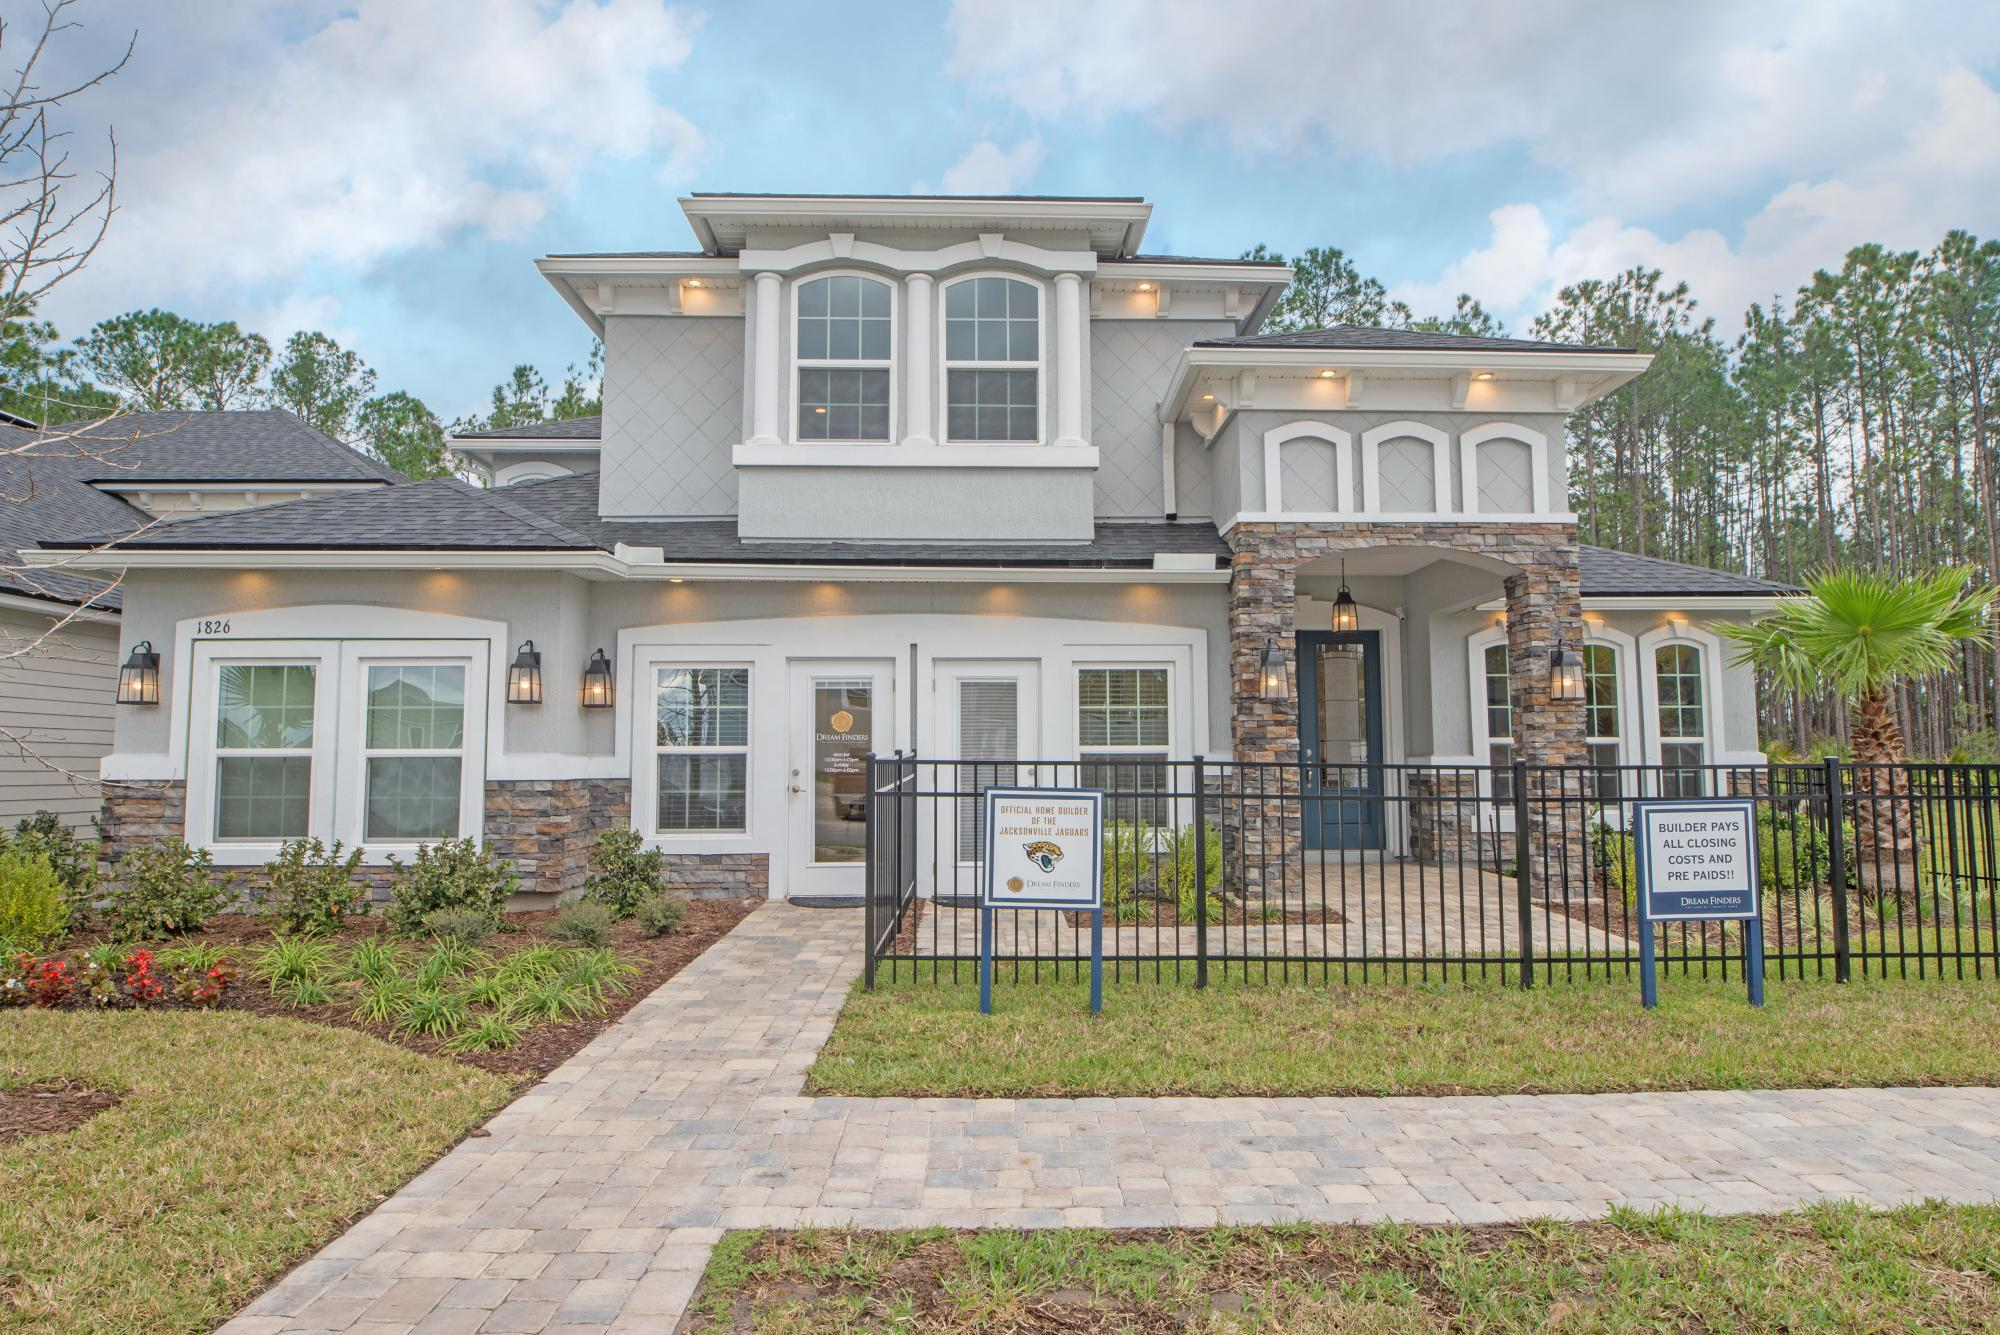 Boca ii by dream finders homes plan liberty hill texas for Liberty home builders